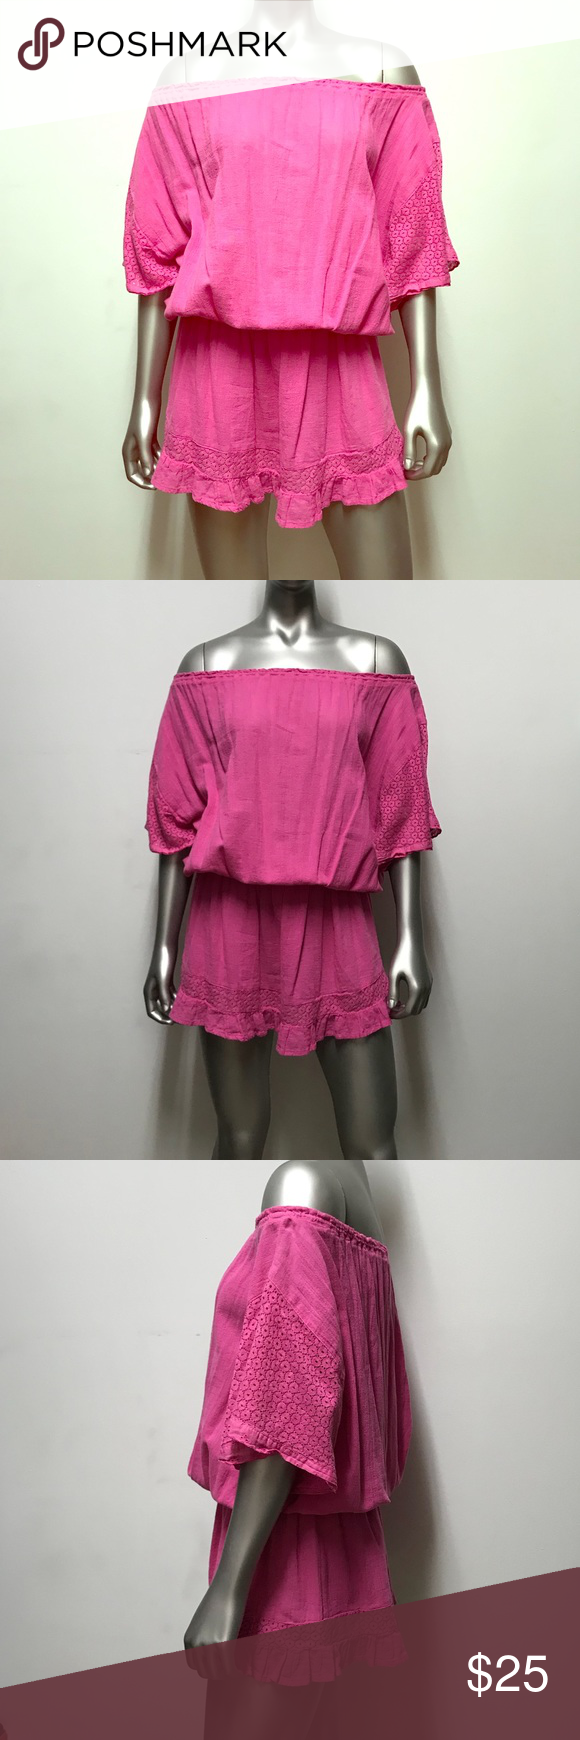 9dfb5b834d9 Victoria Secret pink beach cover up dress small Victoria secret off the  shoulder dress or beach cover up in a size small. Hot pink, excellent  condition!